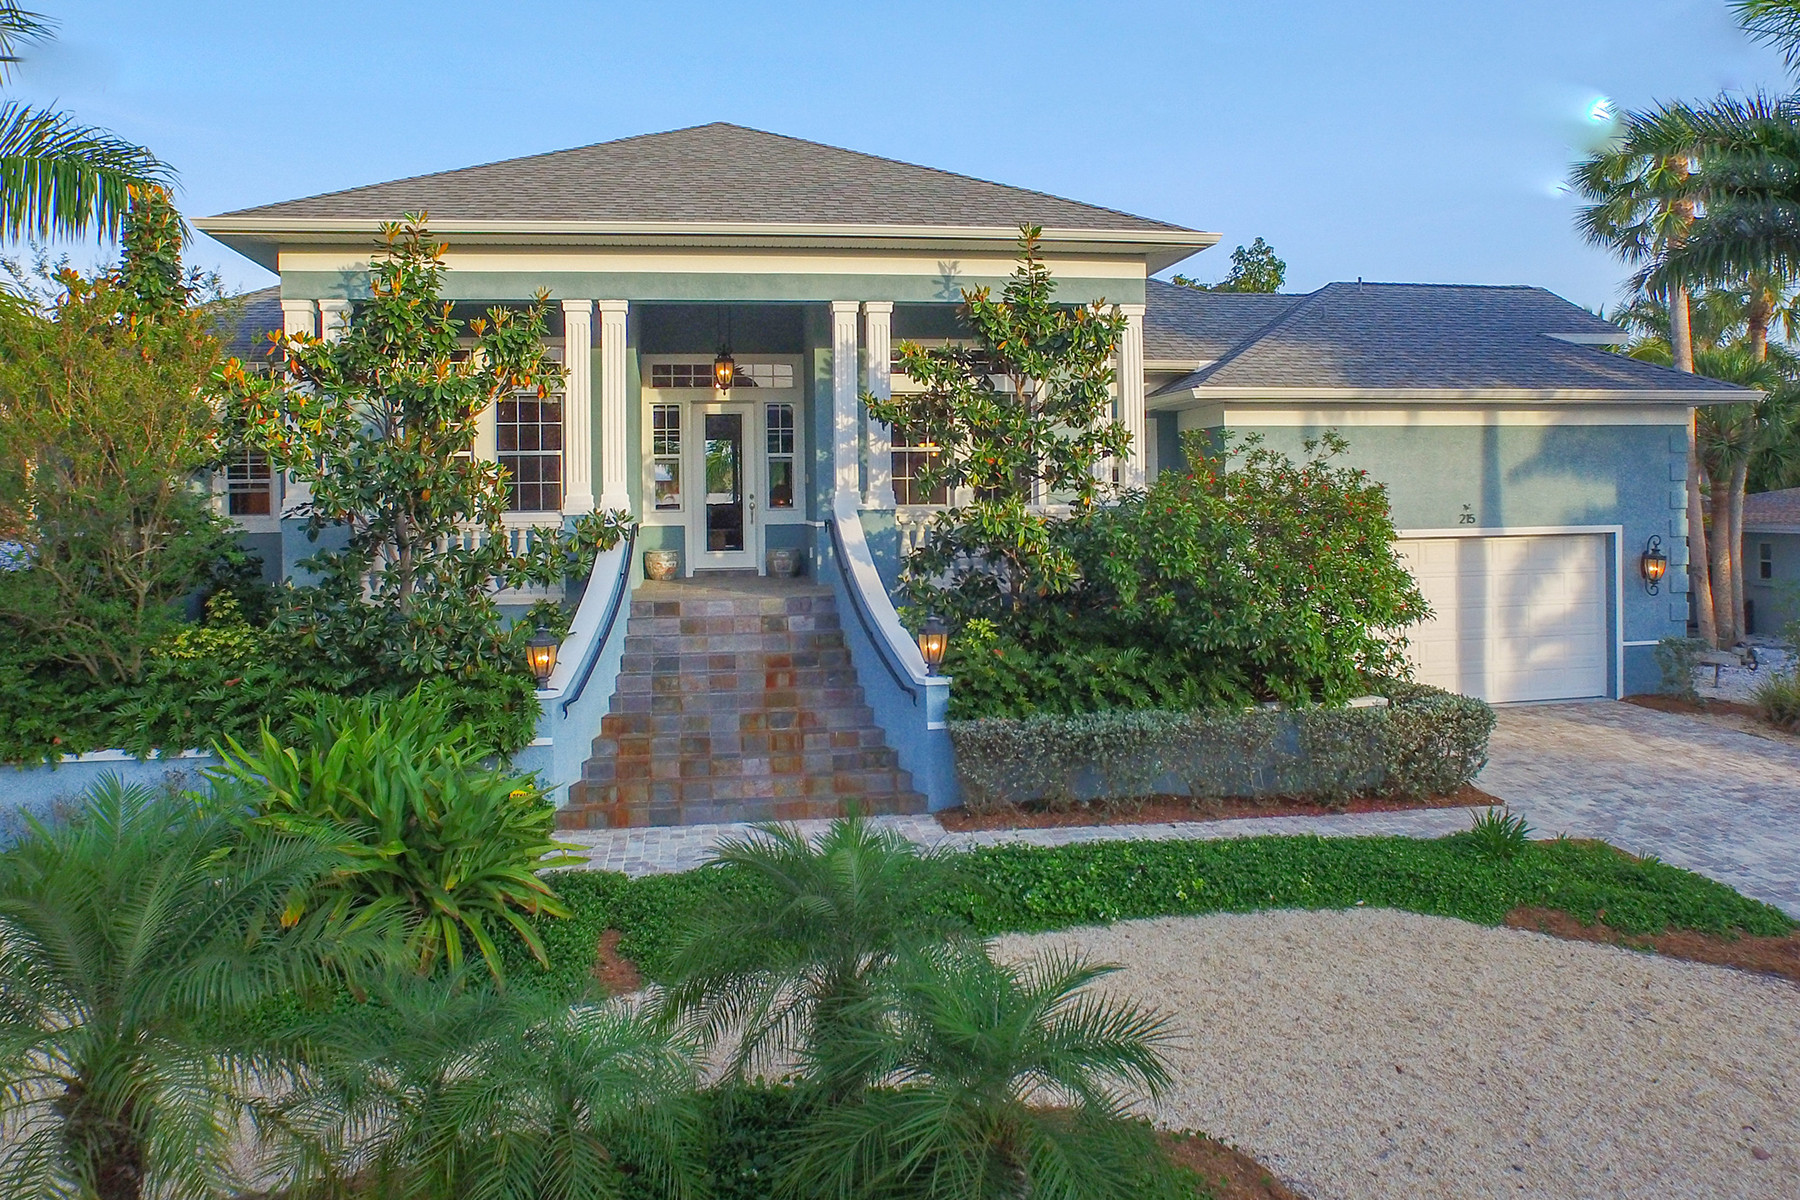 Single Family Home for Sale at ANNA MARIA 215 Chilson Ave Anna Maria, Florida 34216 United States